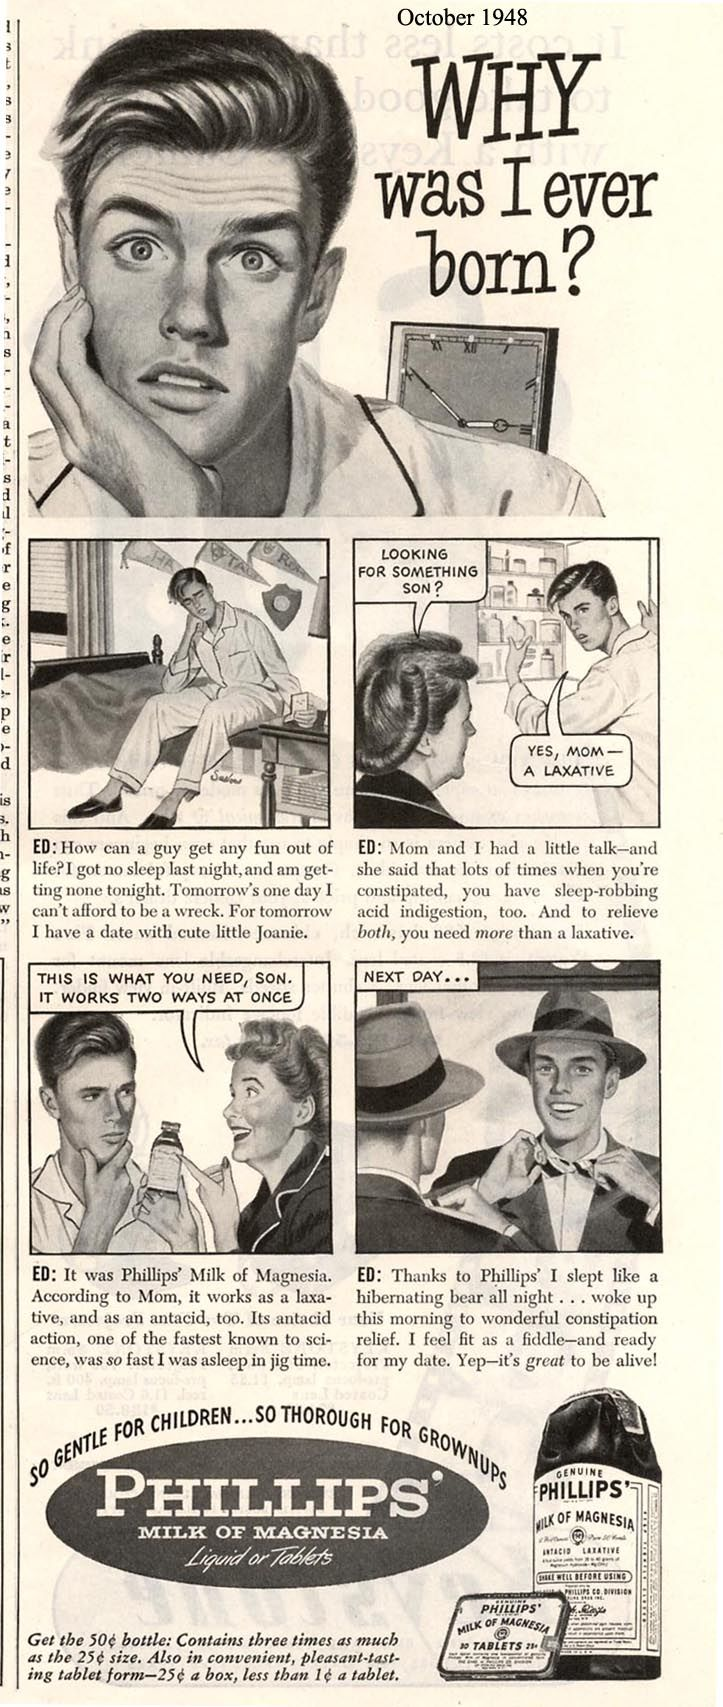 (1948)  Yikes...that must be one serious case of constipation if you are contemplating your own existence.